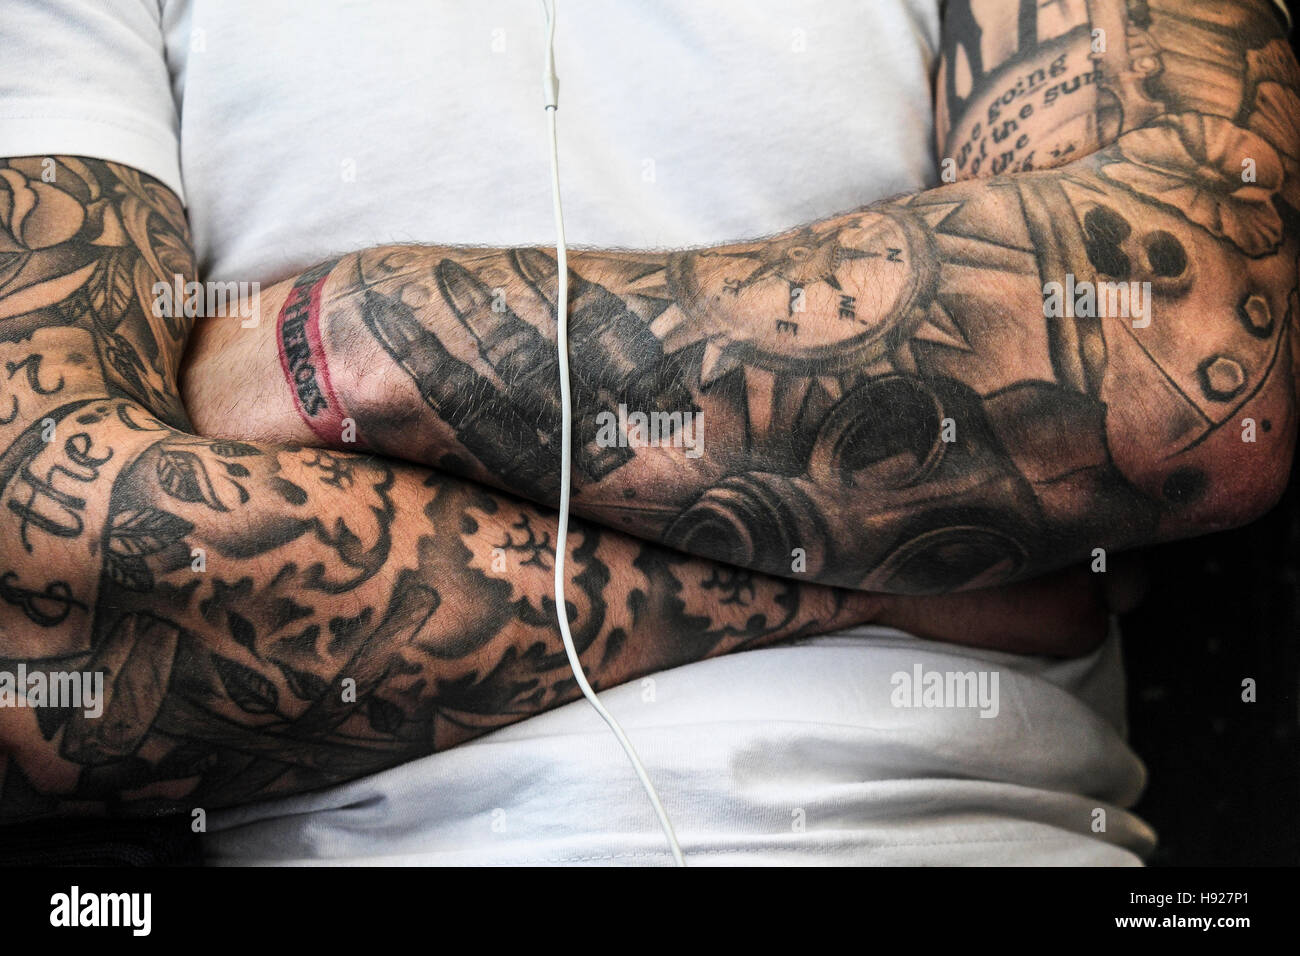 A man with heavily tattooed arms Stock Photo  126054489 - Alamy 985c44d768a3